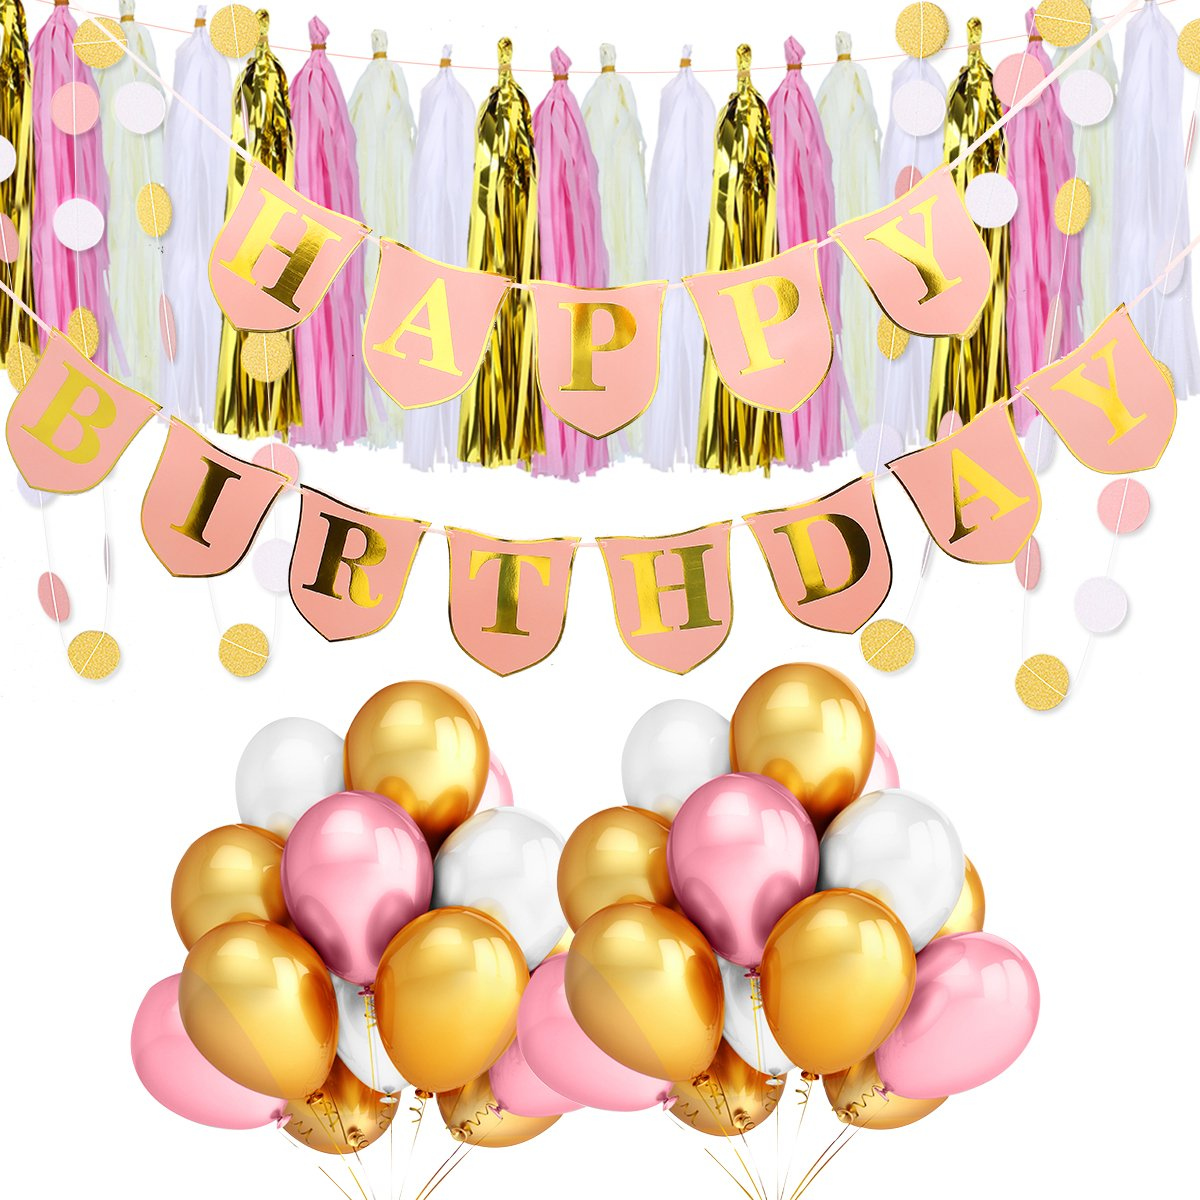 TeePolly Pink Happy Birthday Banner,Gold & Pink & White Balloons,Tissue Tassel Garland,Paper Polka Dot Banners for Party Decorations